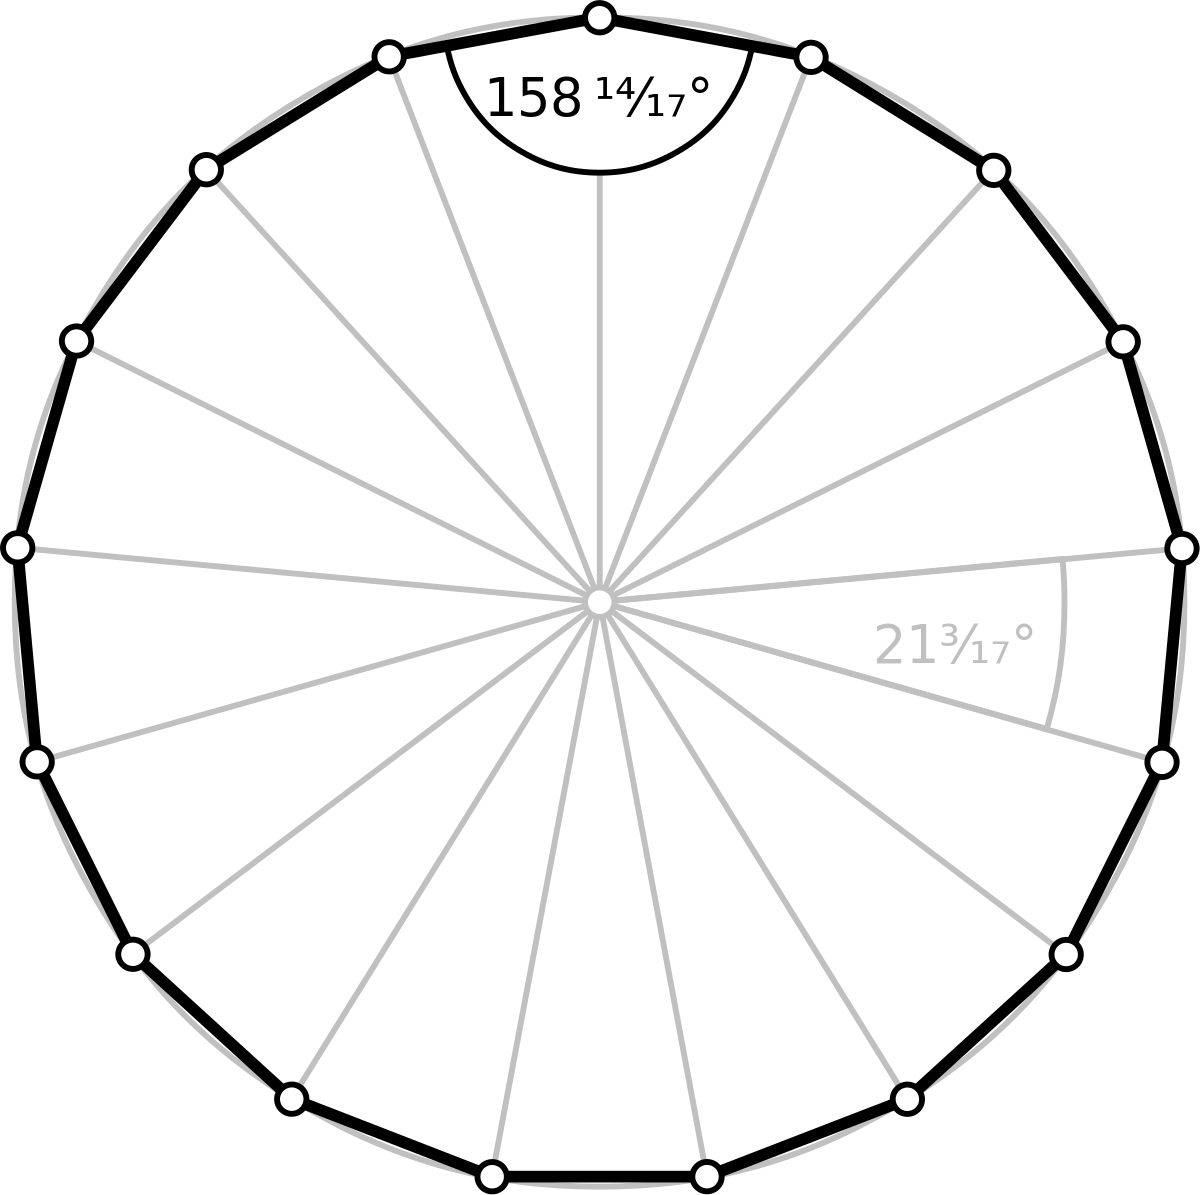 Drawing polygons 50 side. Heptadecagon wikipedia